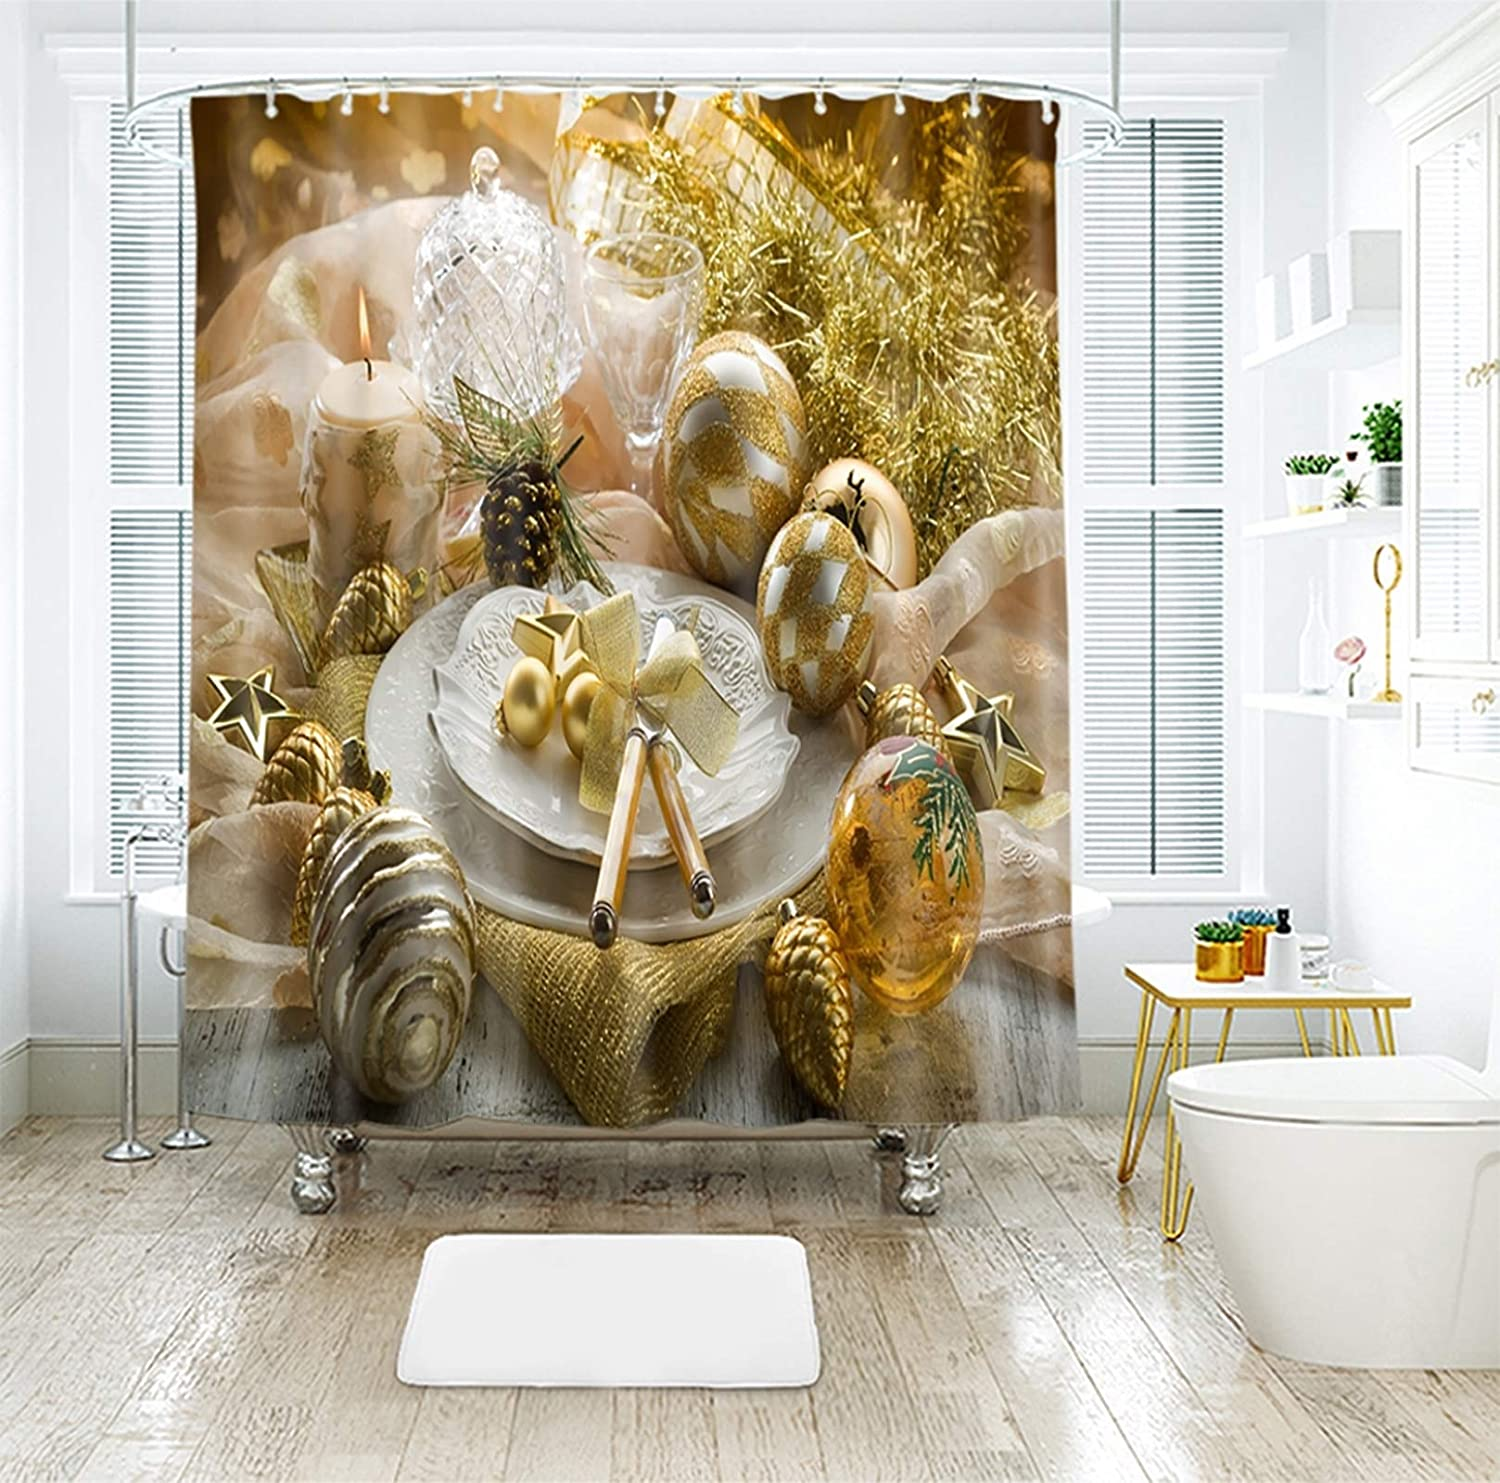 Max 64% OFF Daesar Christmas Shower Curtain 72x78 Bath Inch NEW before selling ☆